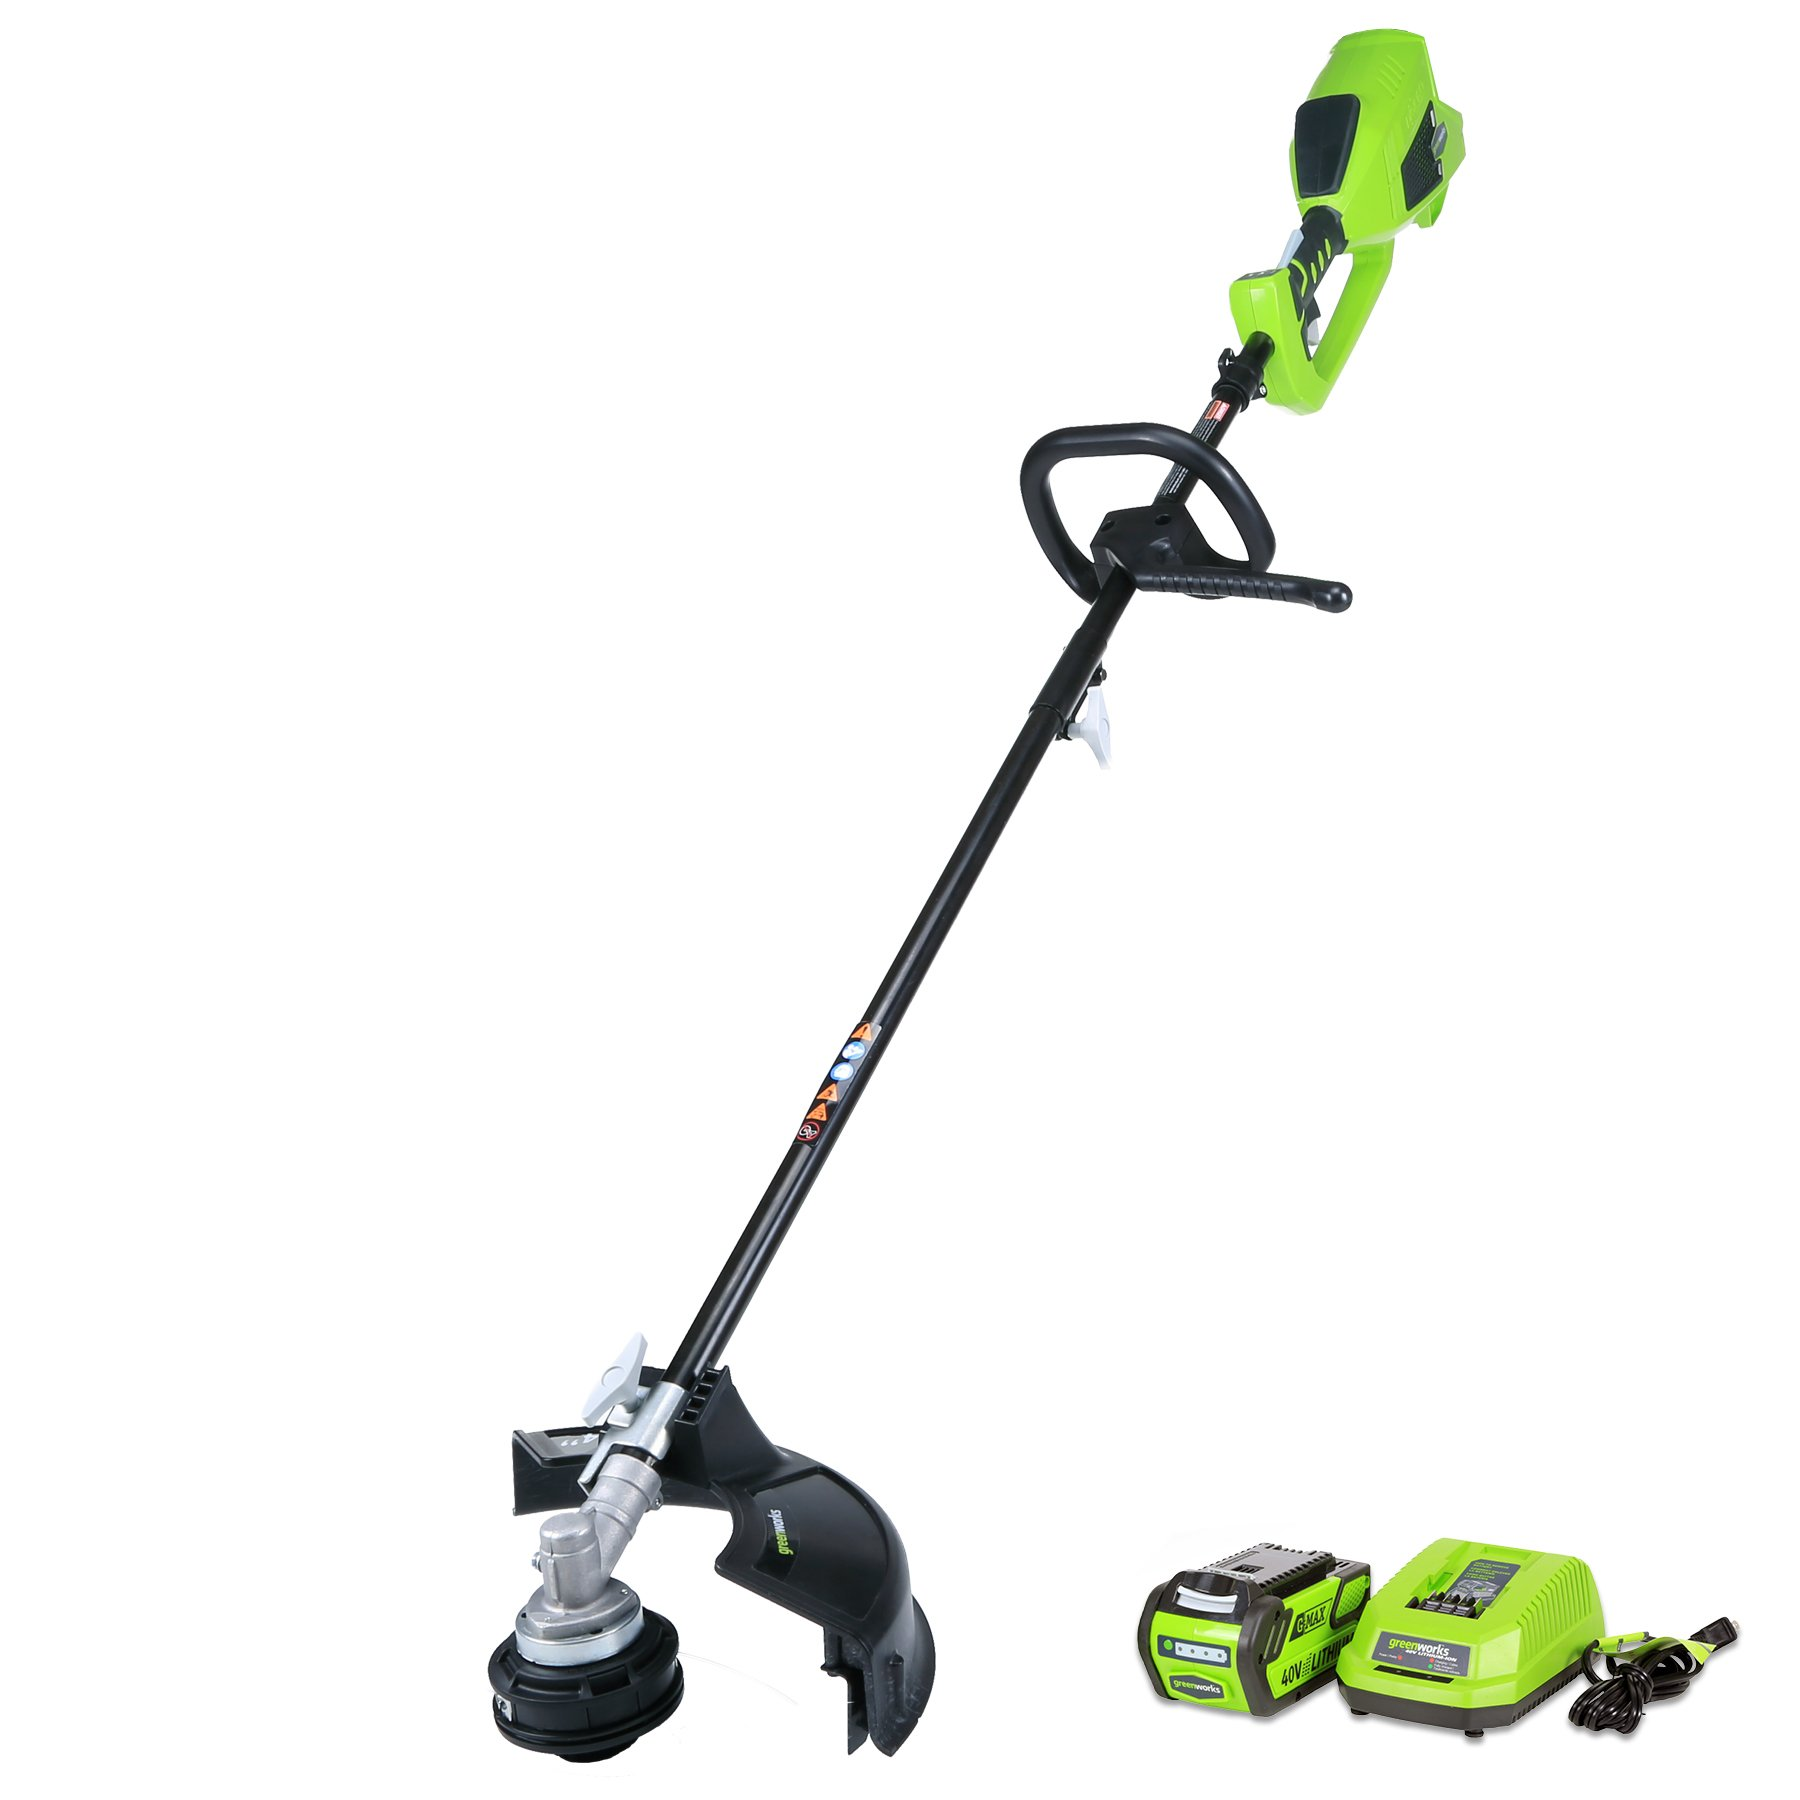 Greenworks 14-Inch 40V Cordless String Trimmer (Attachment Capable), 4.0 AH Battery Included 21362 by Greenworks